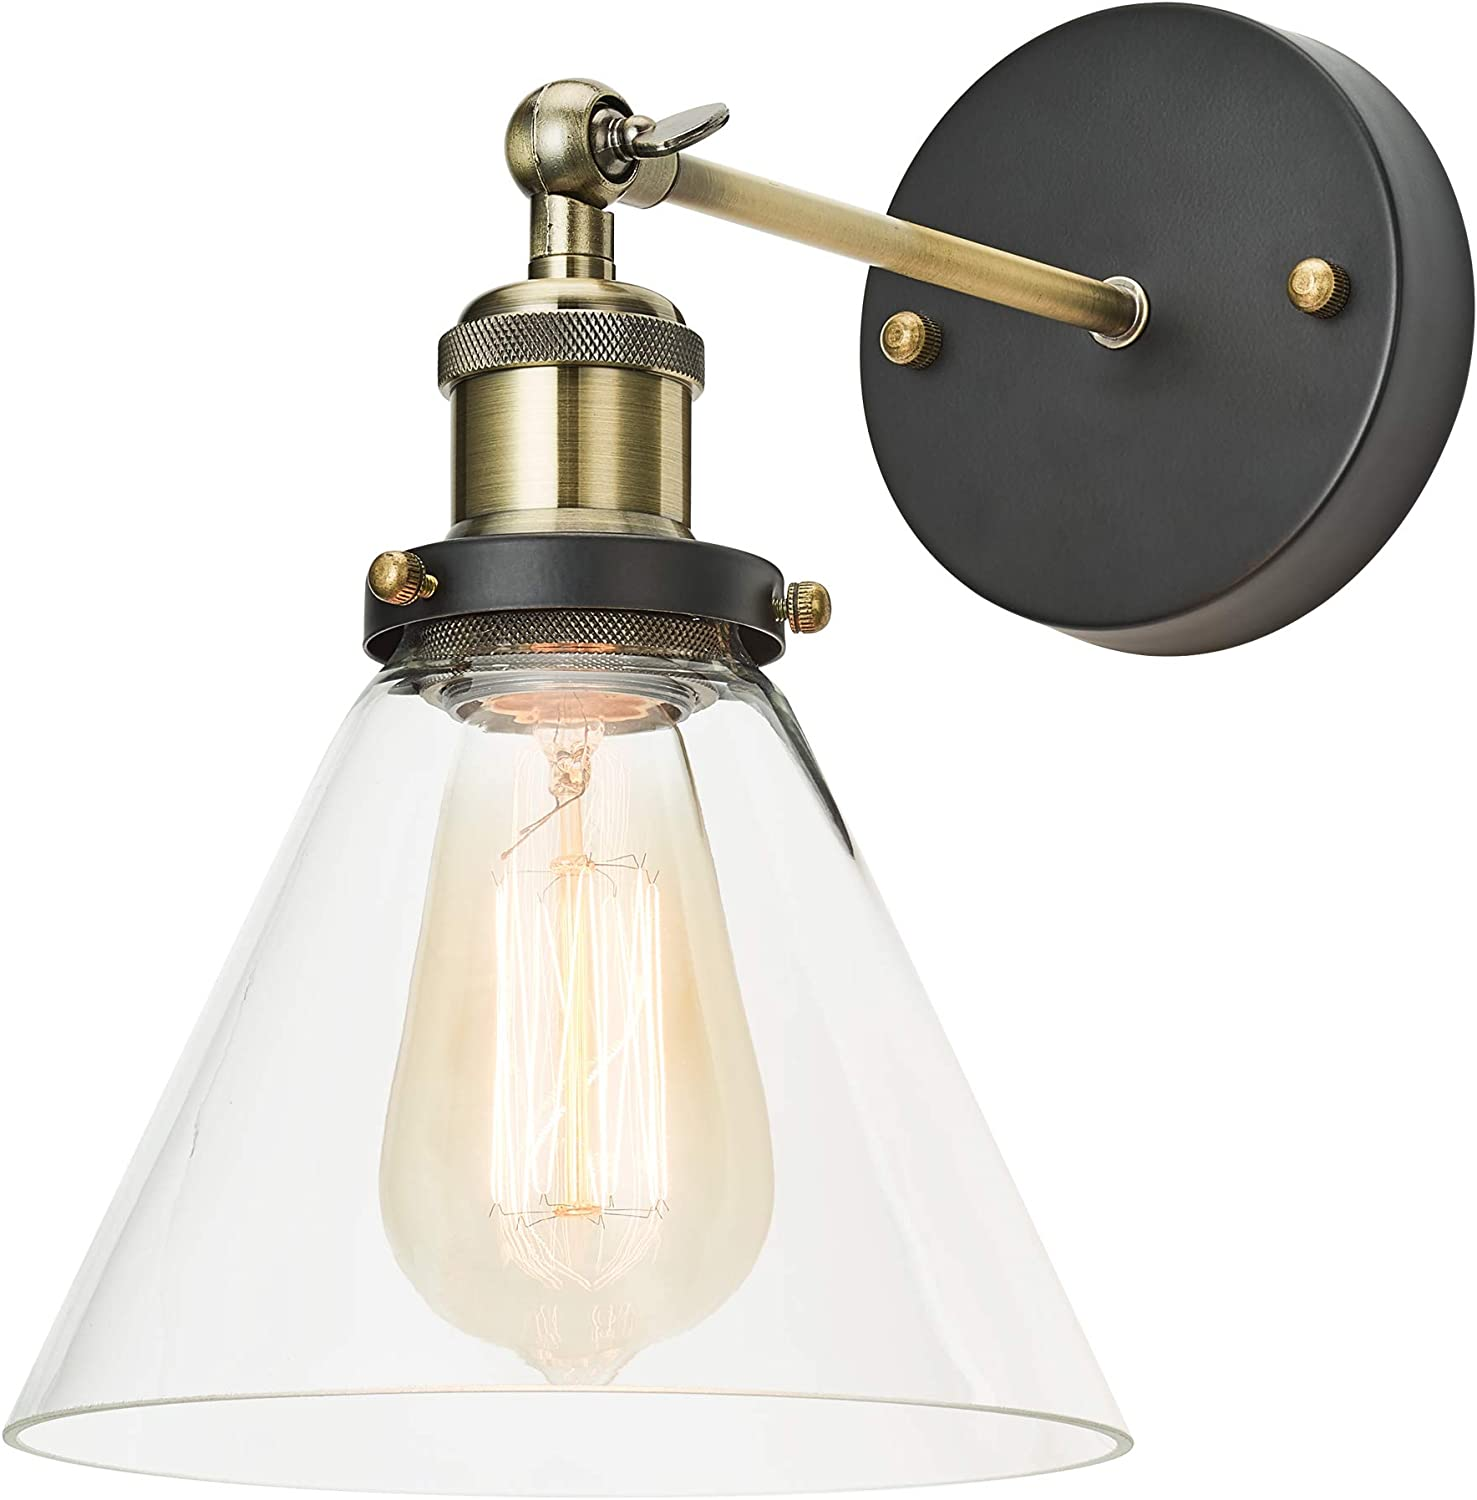 Home Luminaire 30 Almanor 30-Light Adjustable Sconce with Clear